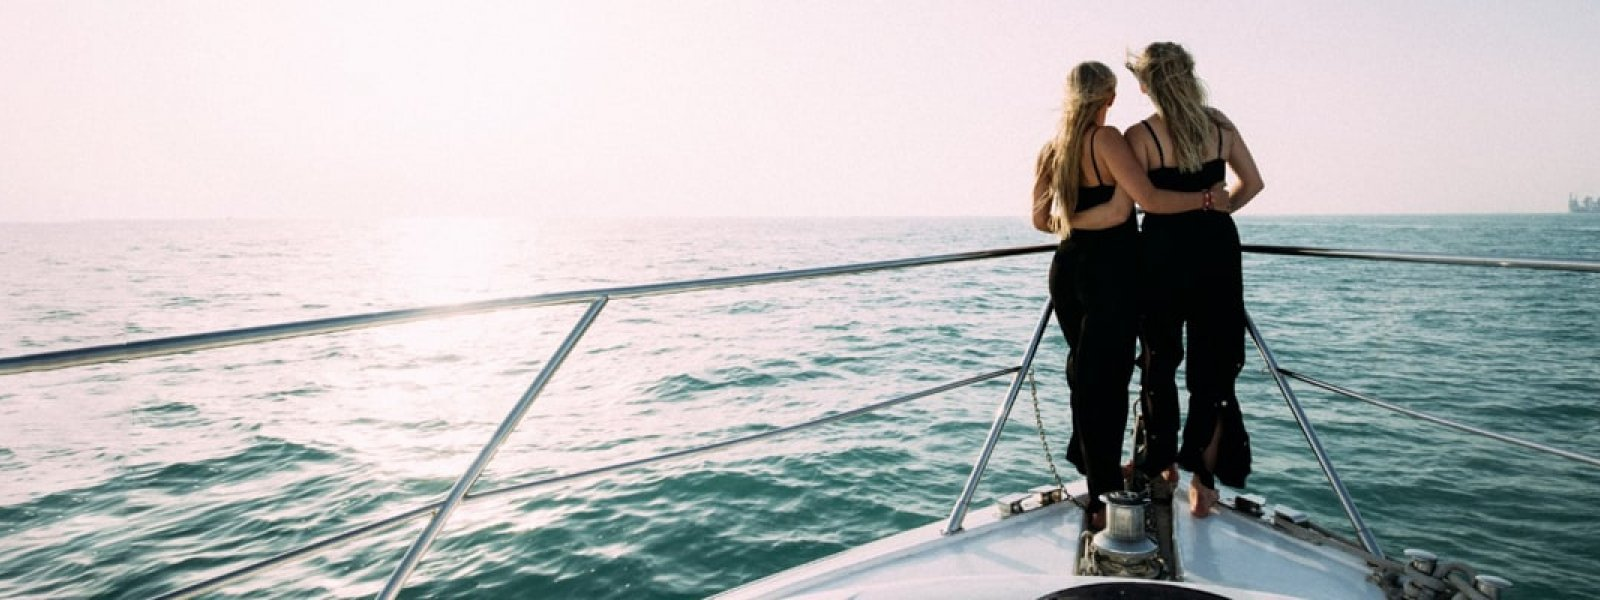 Girls on a luxury yacht enjoying their yacht trip in Dubai